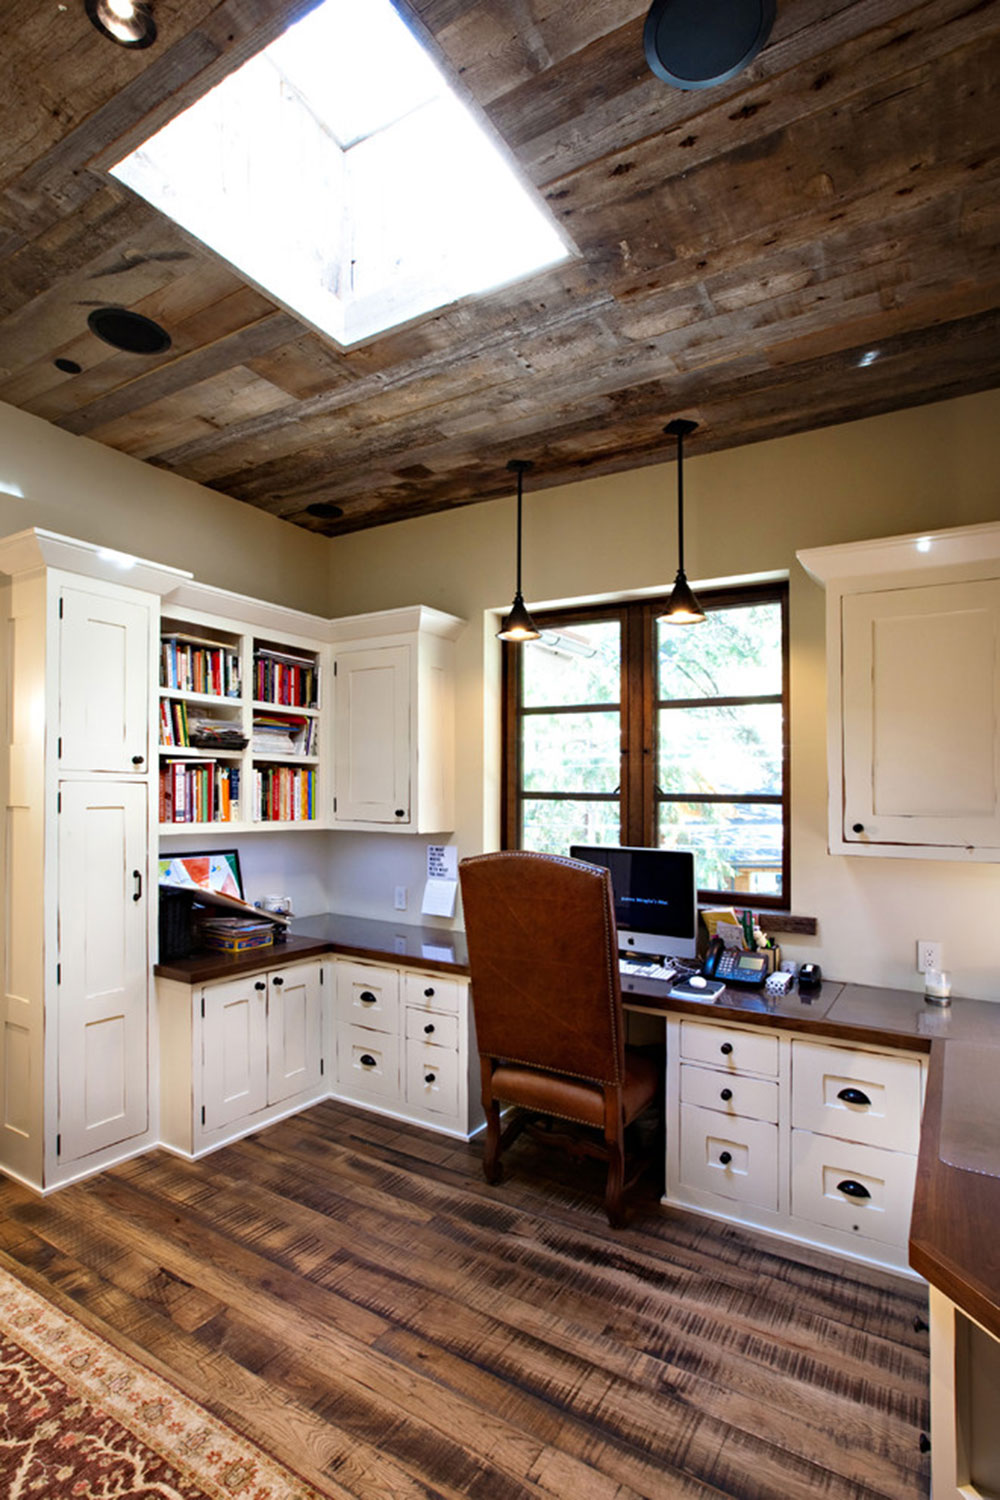 Enhance Your Work Day With These Home Office Flooring Ideas8 Enhance Your Work Day With These Home Office Flooring Ideas